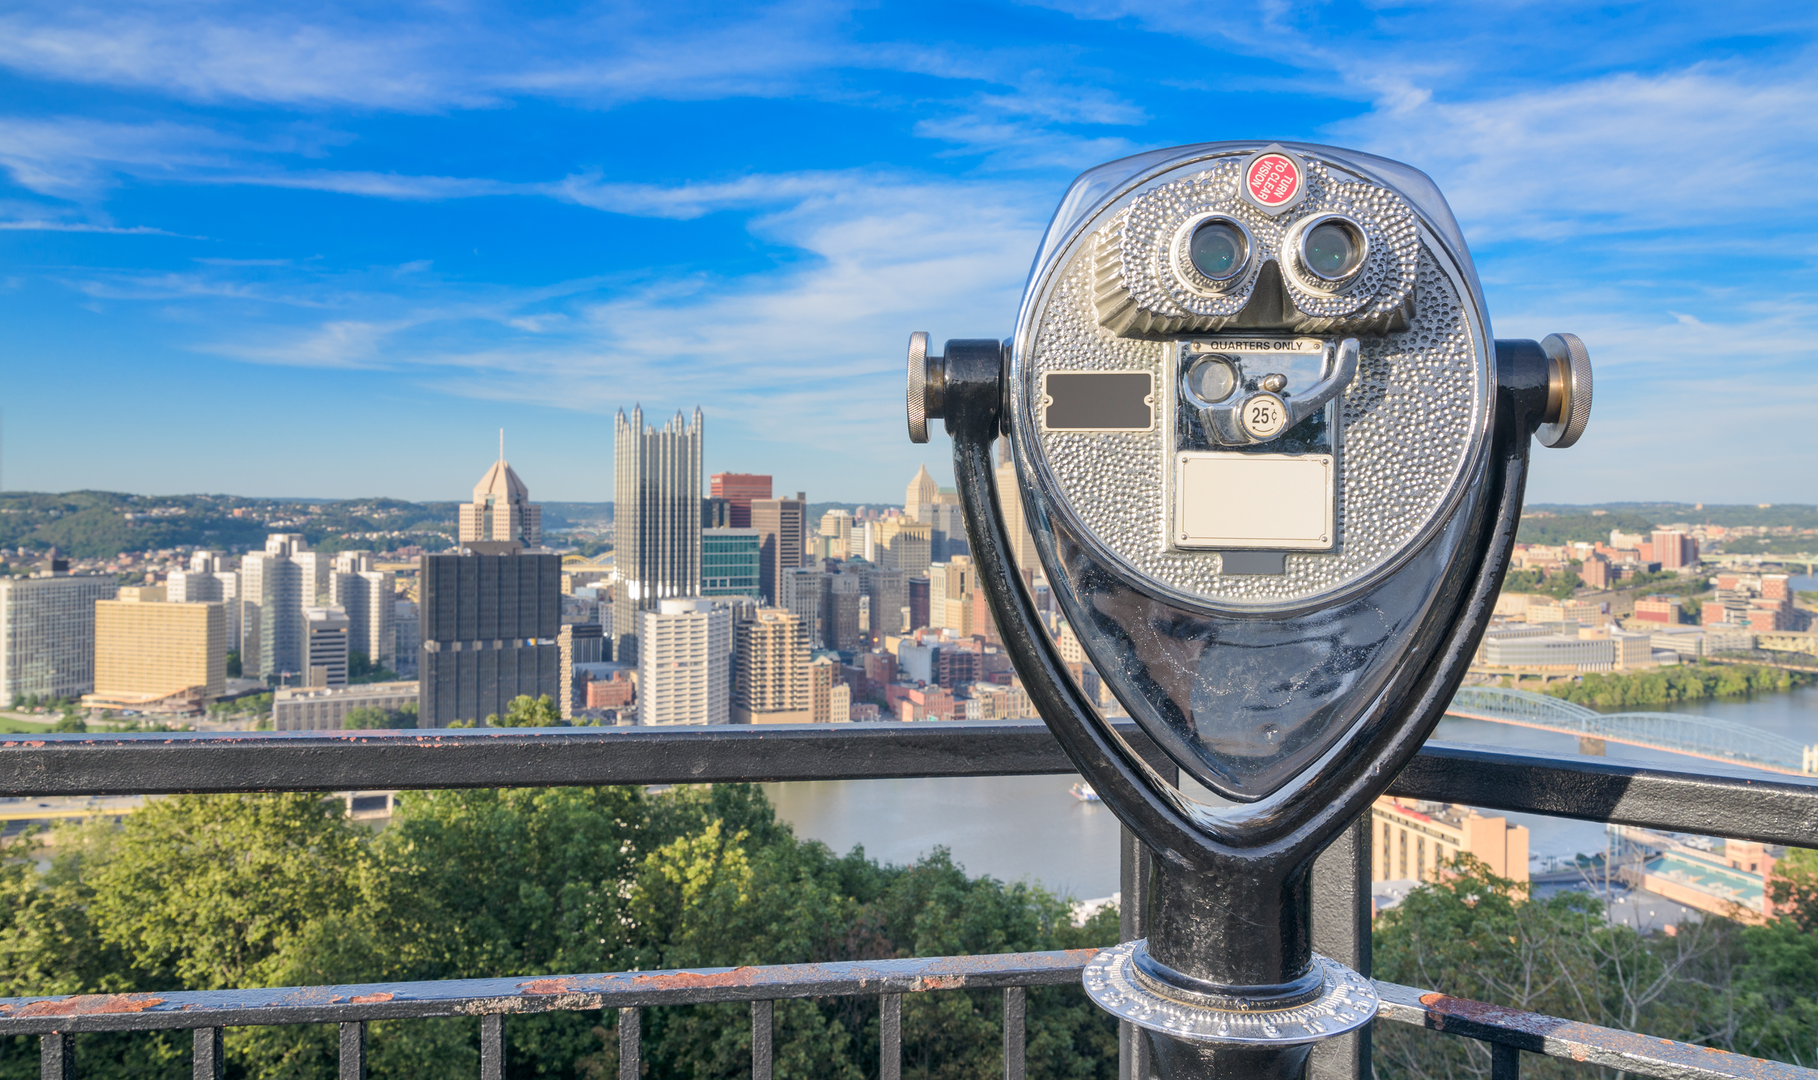 Rooftop binoculars looking out over a city